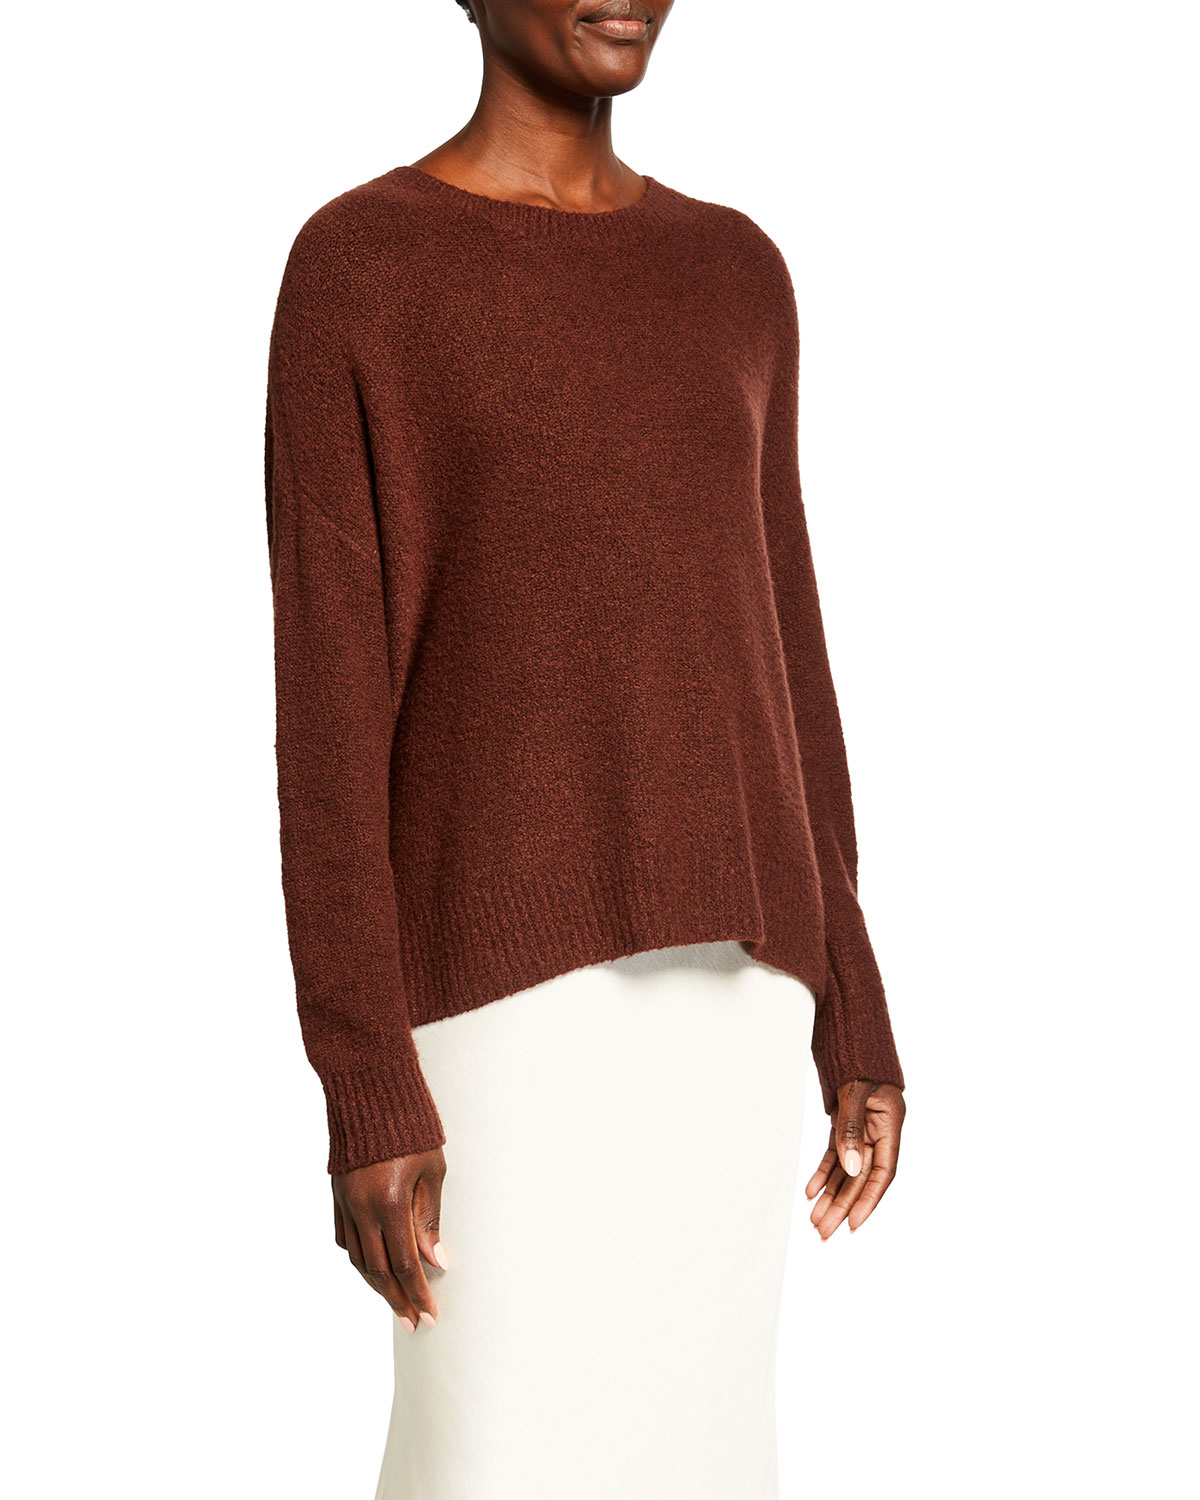 Alice And Olivia ROMA BOUCLE PULLOVER SWEATER